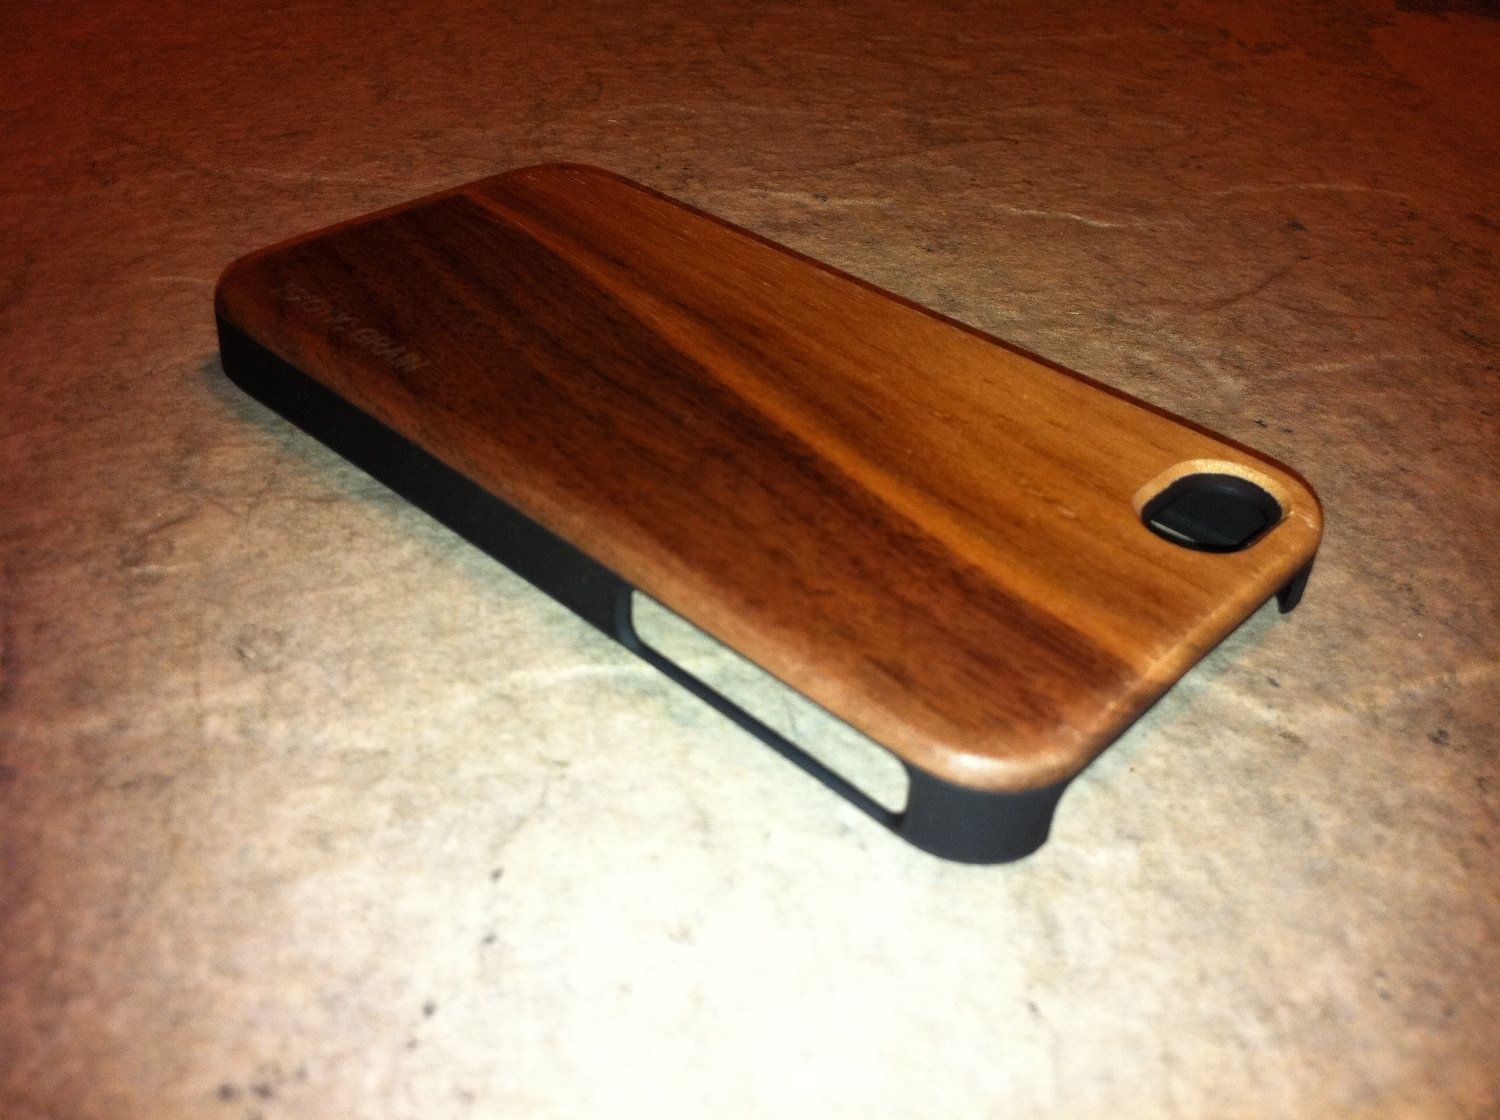 IPHONE 4 and 4s CASE , real wood rich polished light  walnut   back ,sharp looking black edge